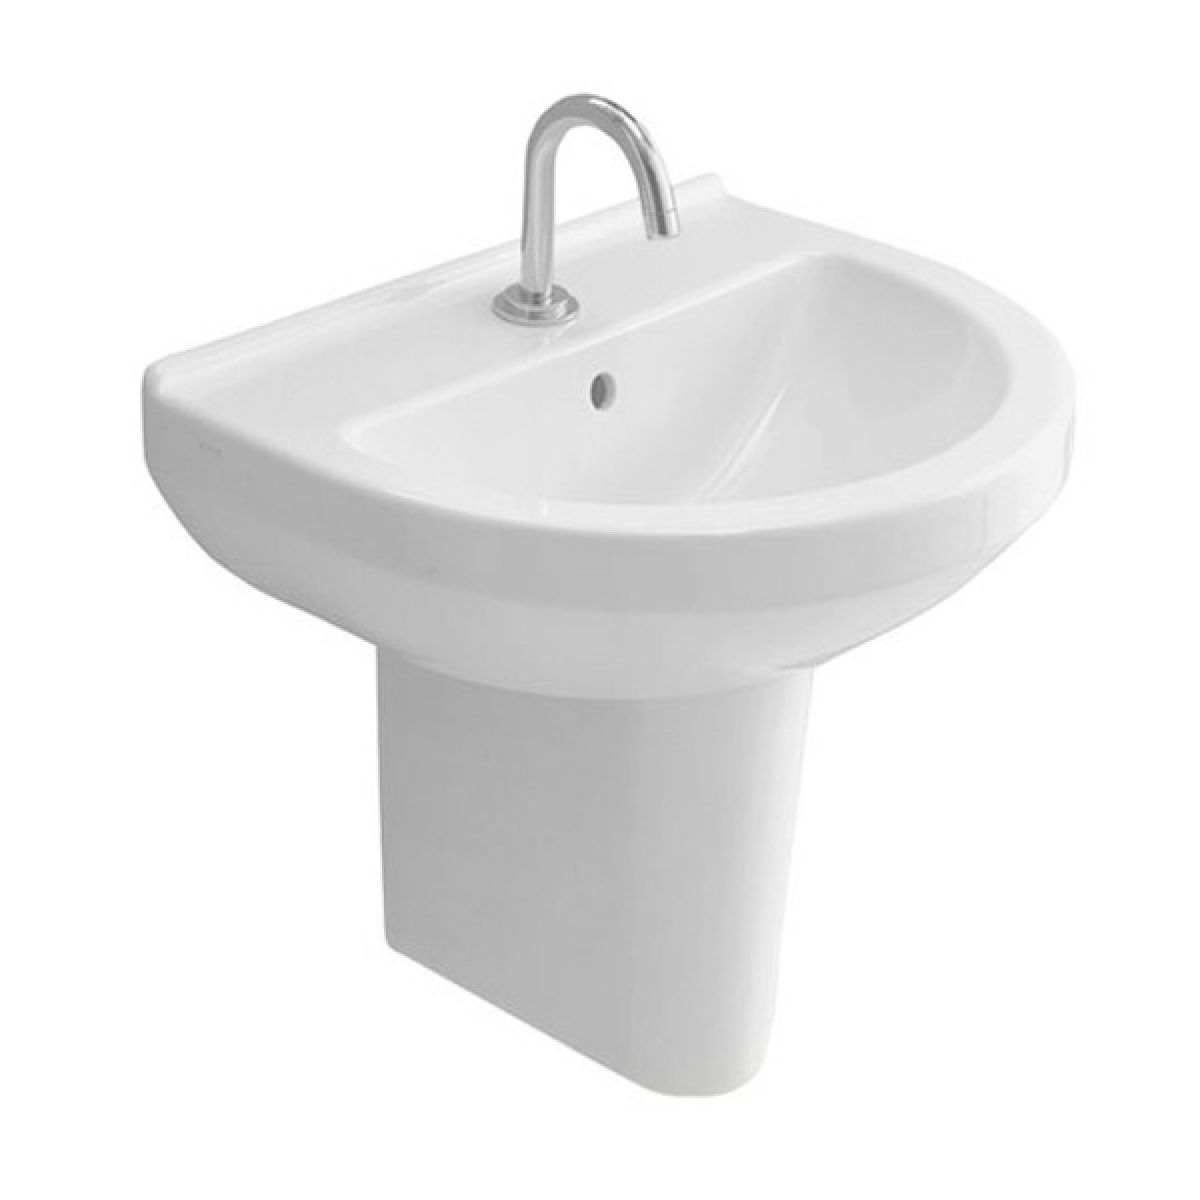 Vitra S50 1 Tap Hole Round Basin with Semi Pedestal 550mm